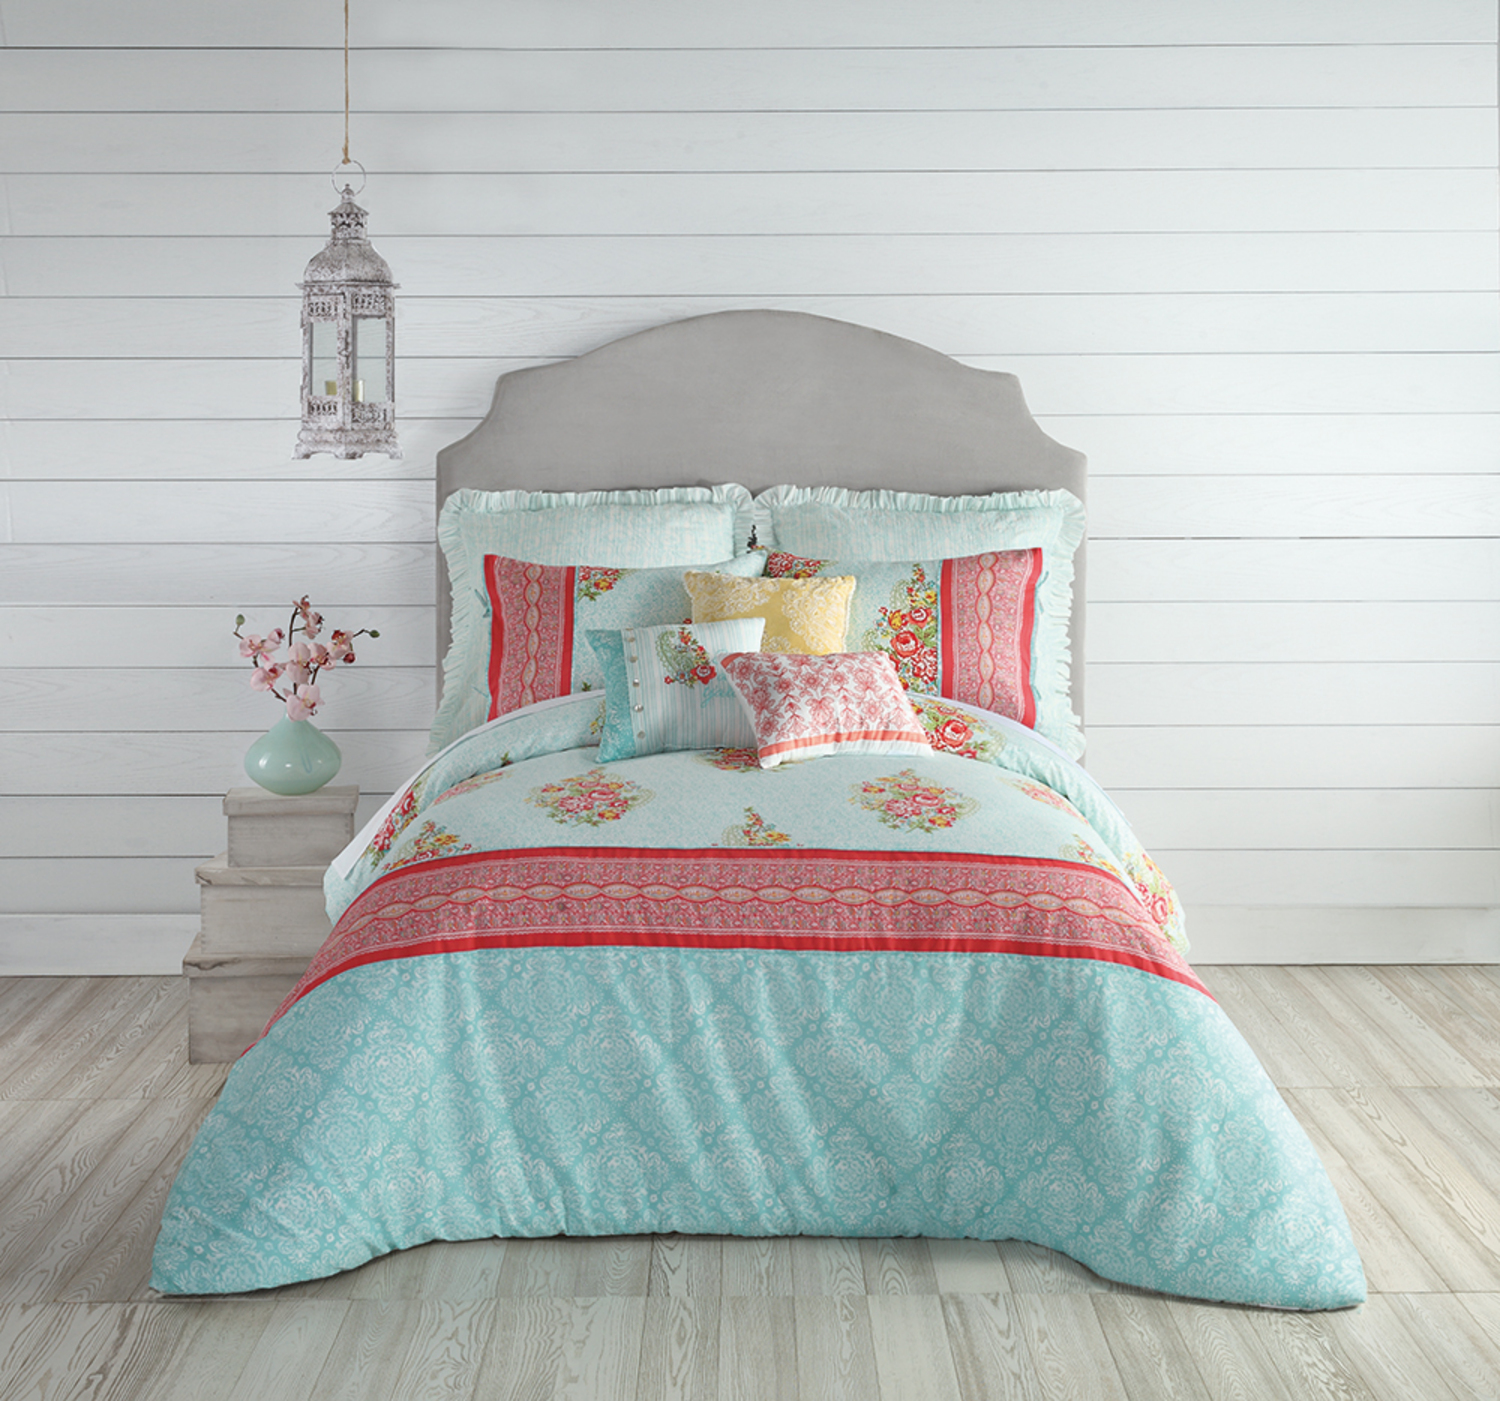 Ellie By Jessica Simpson Bedding Beddingsuperstore Com